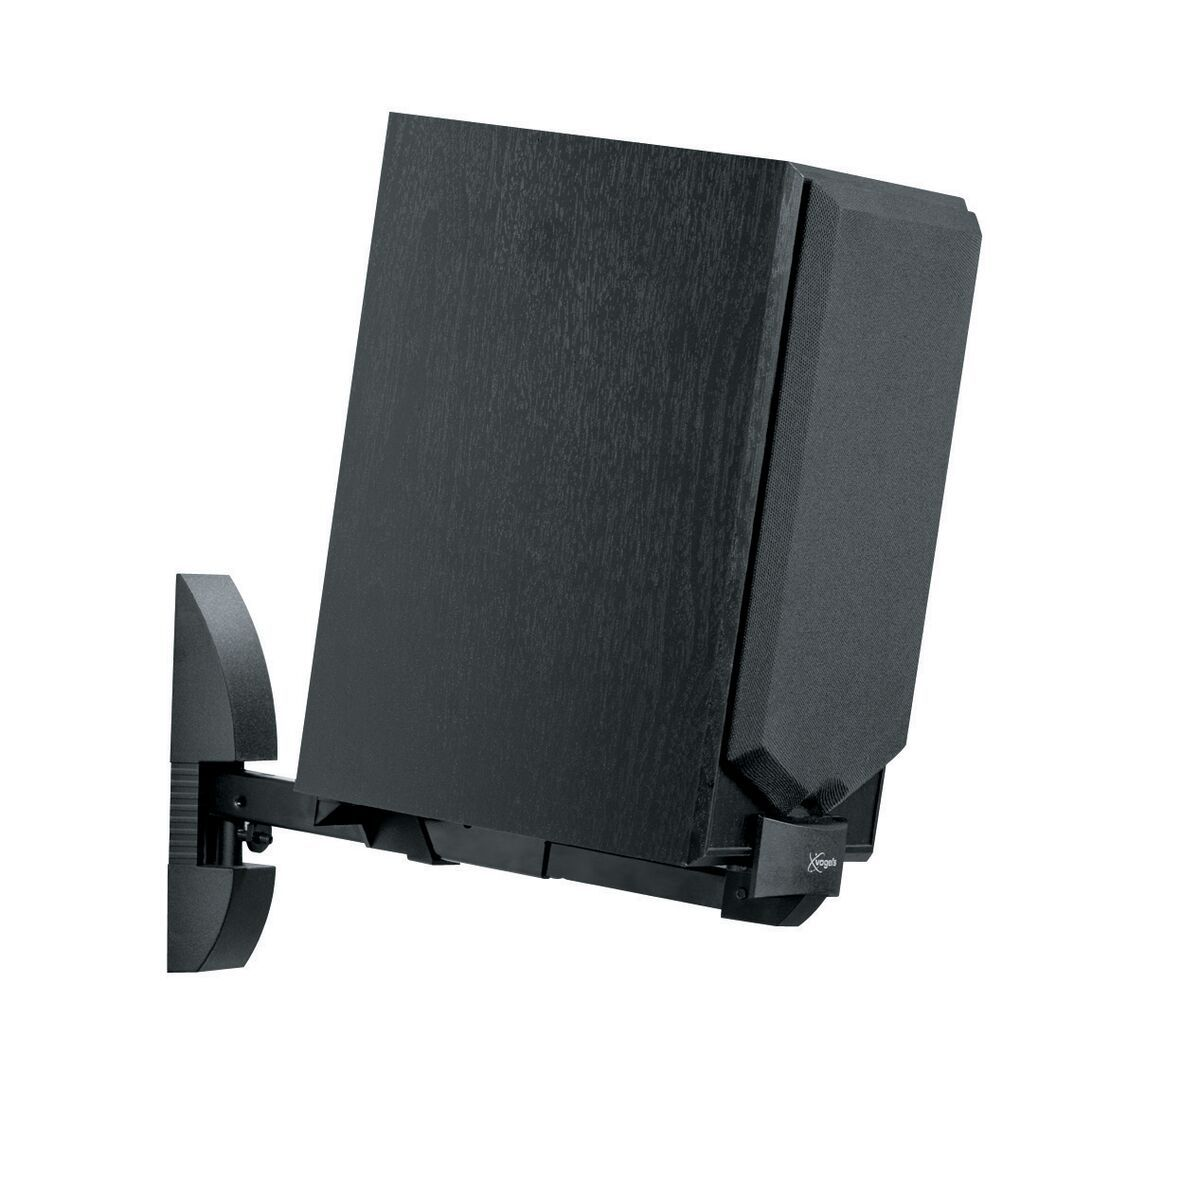 Vogel's VLB 200 Soporte de pared para altavoces (2x) - Para altavoces de hasta 20 kg - Application